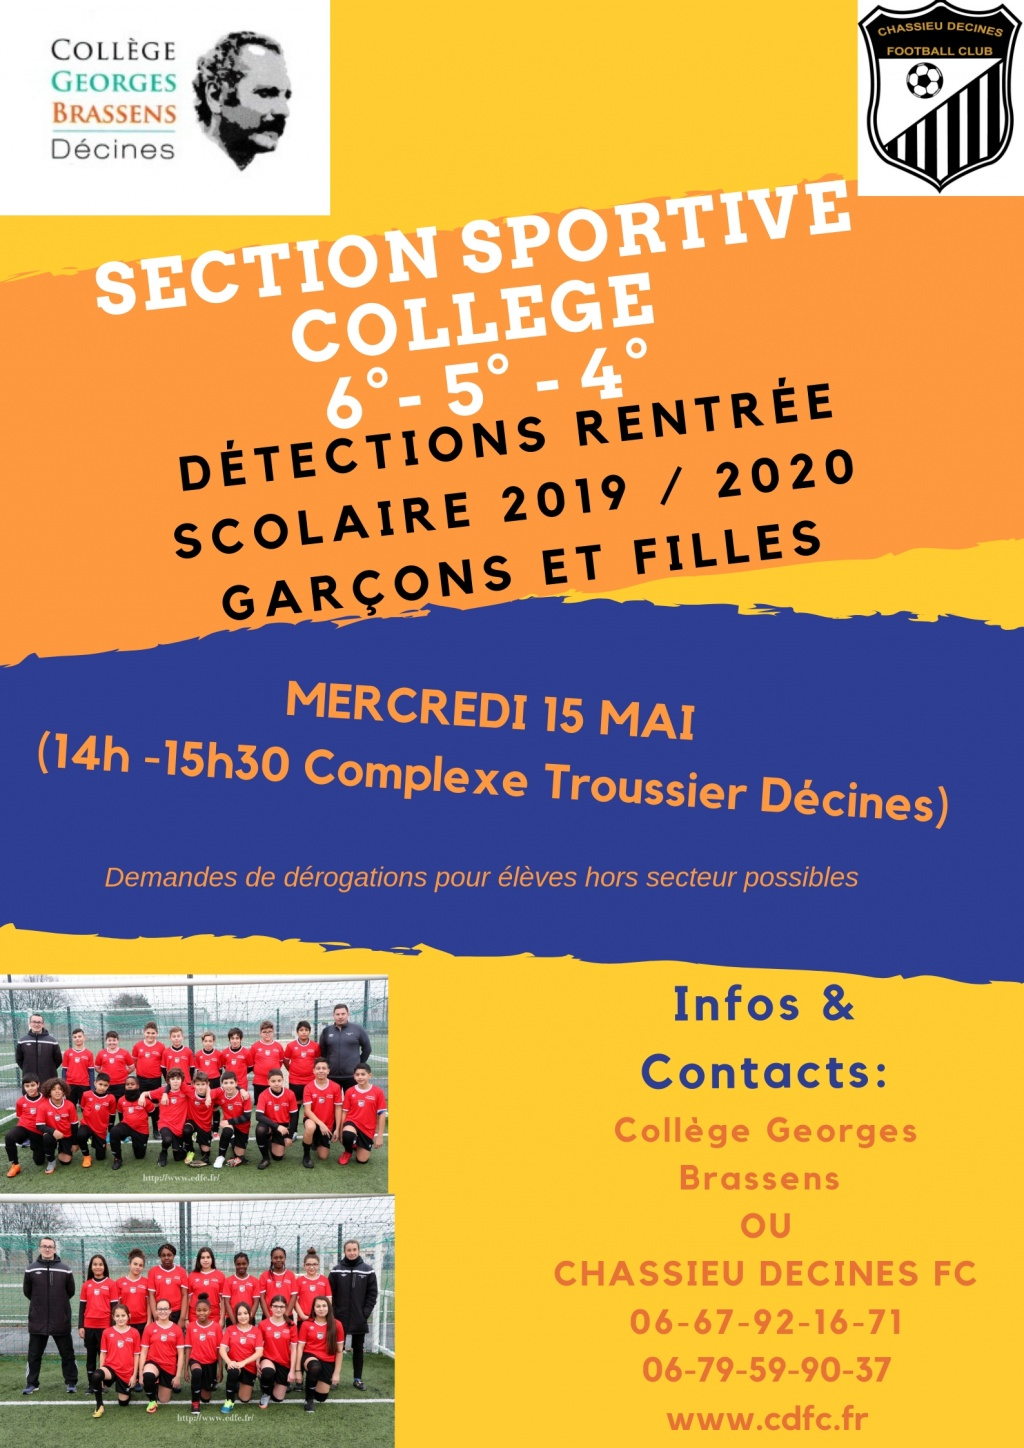 Détection section sportive College Brassens Décines